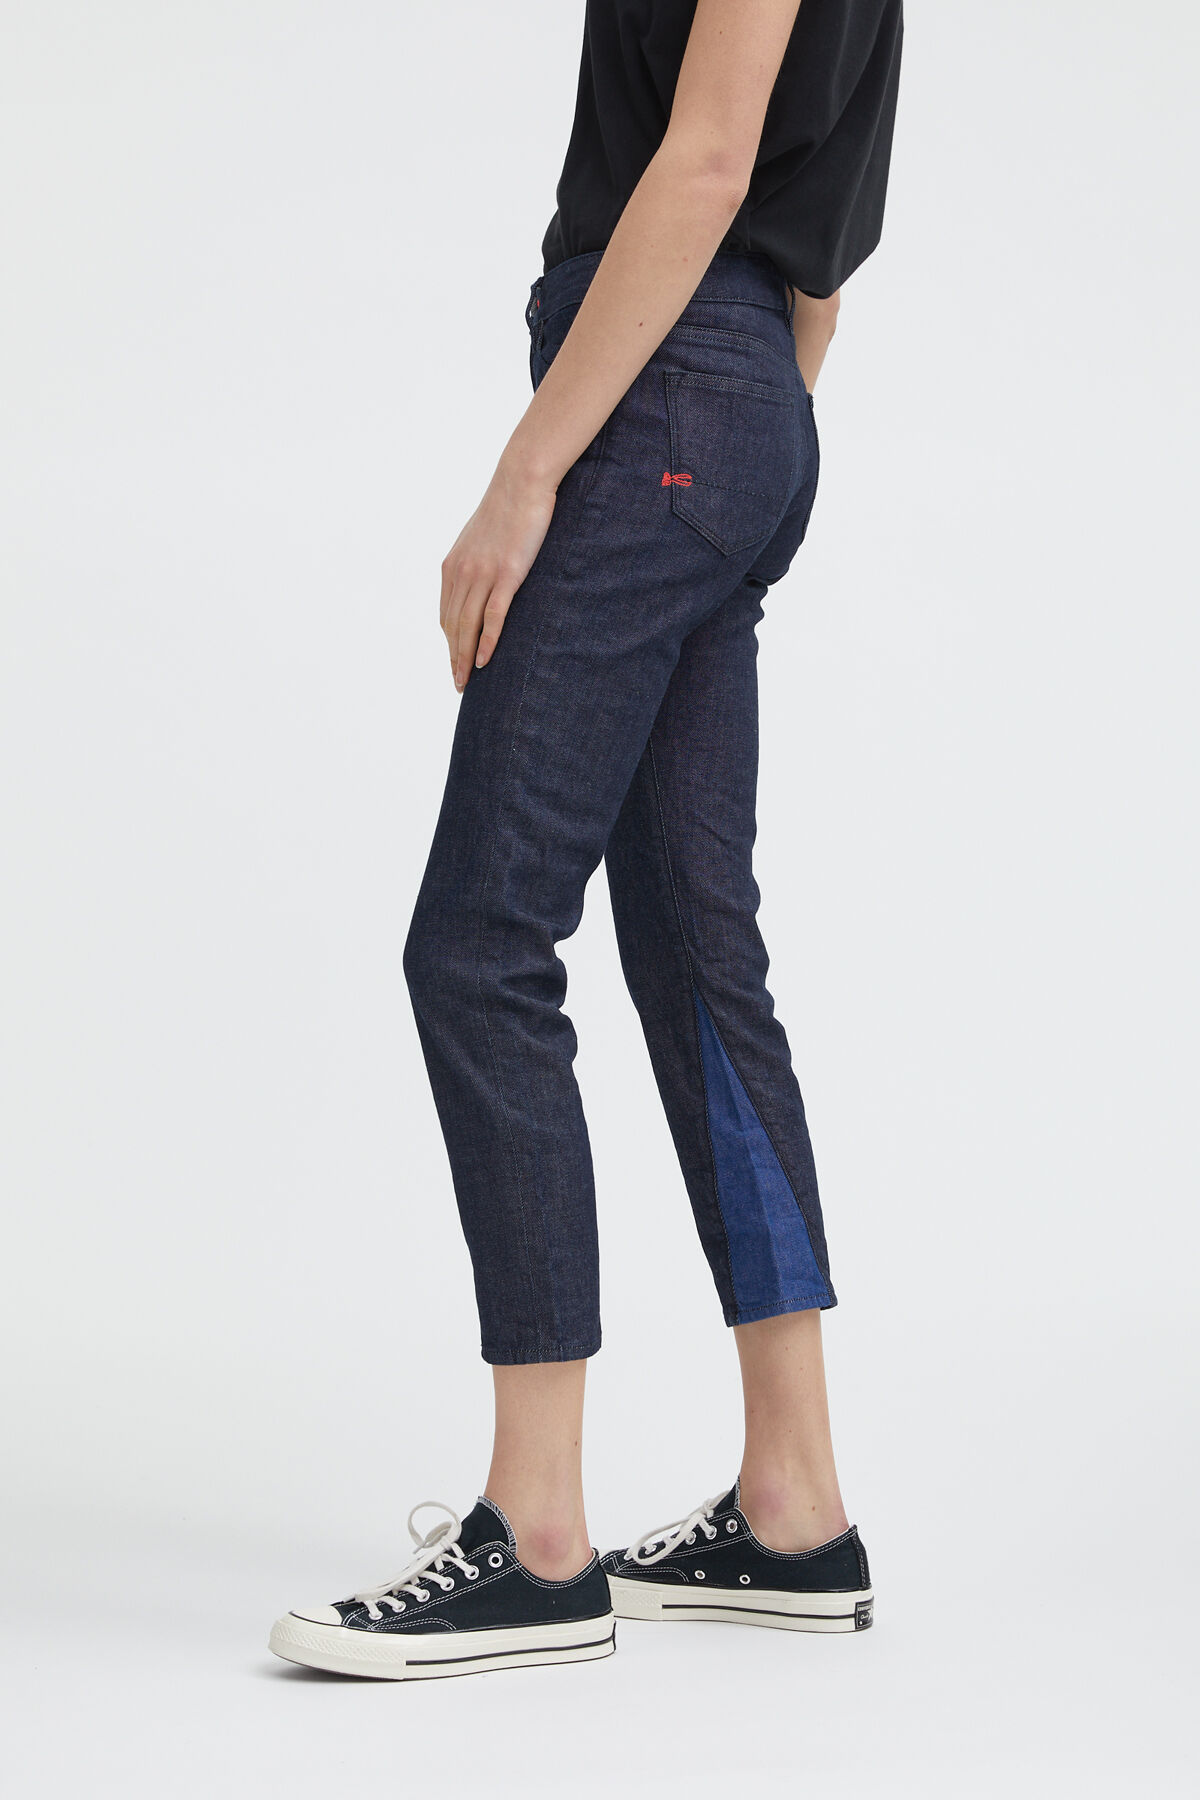 LIZ ANKLE 90MIX Eco-Friendly Indigo Denim - Mid-rise, Slim Fit